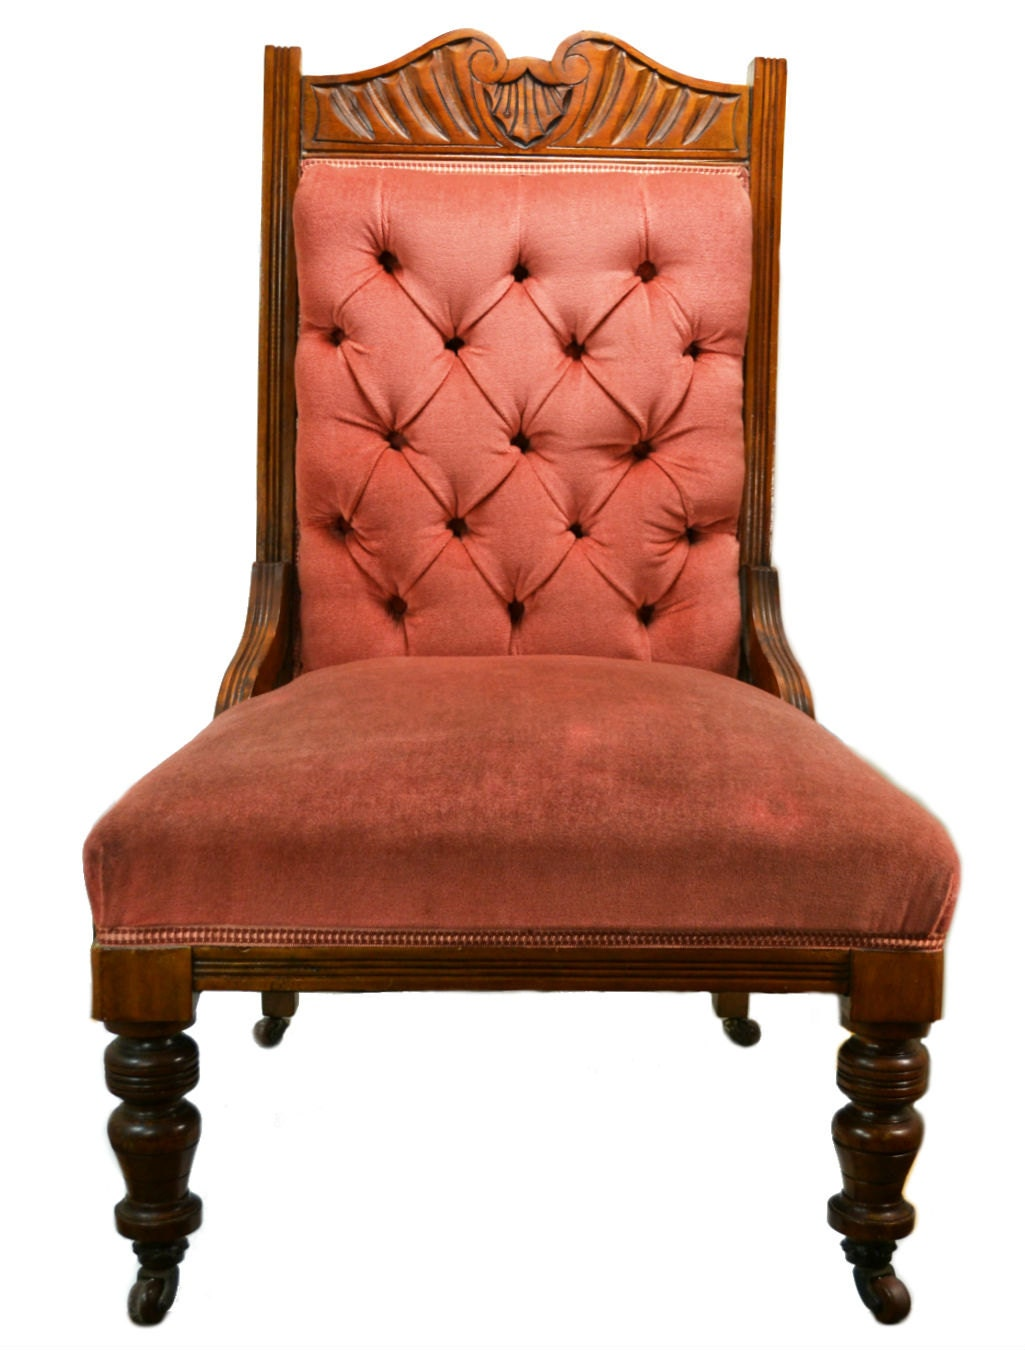 Elegant Chairs Antique Wood Decor Pink Elegant Chair High Victorian